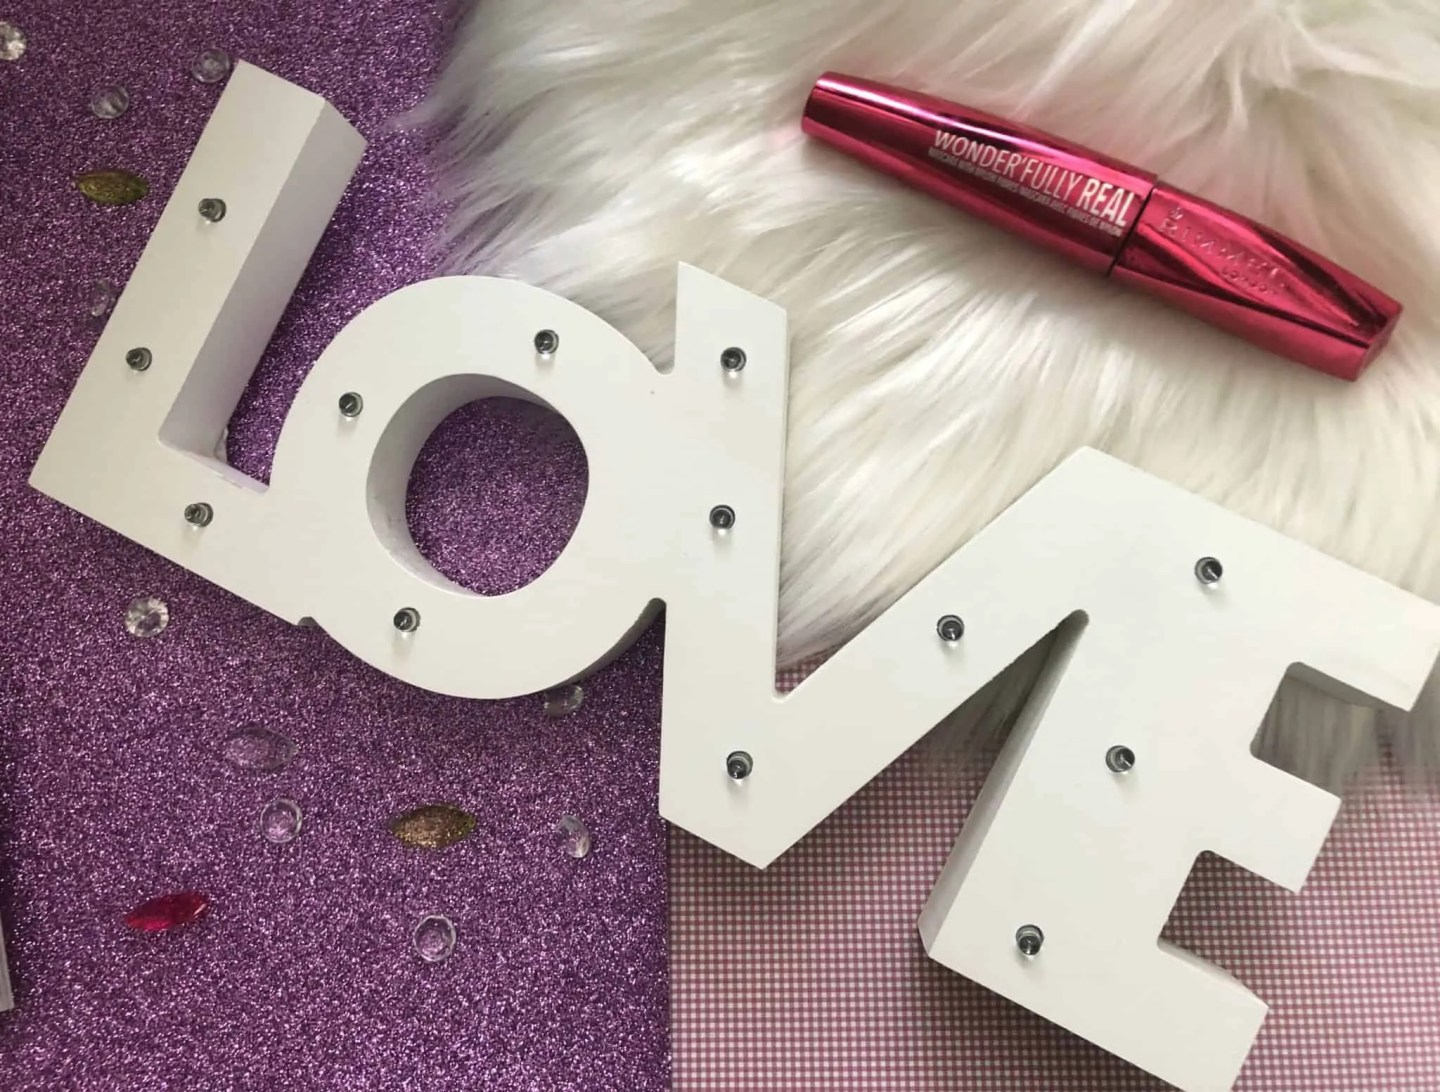 Most disappointing makeup products rimmel wonderfully real mascara